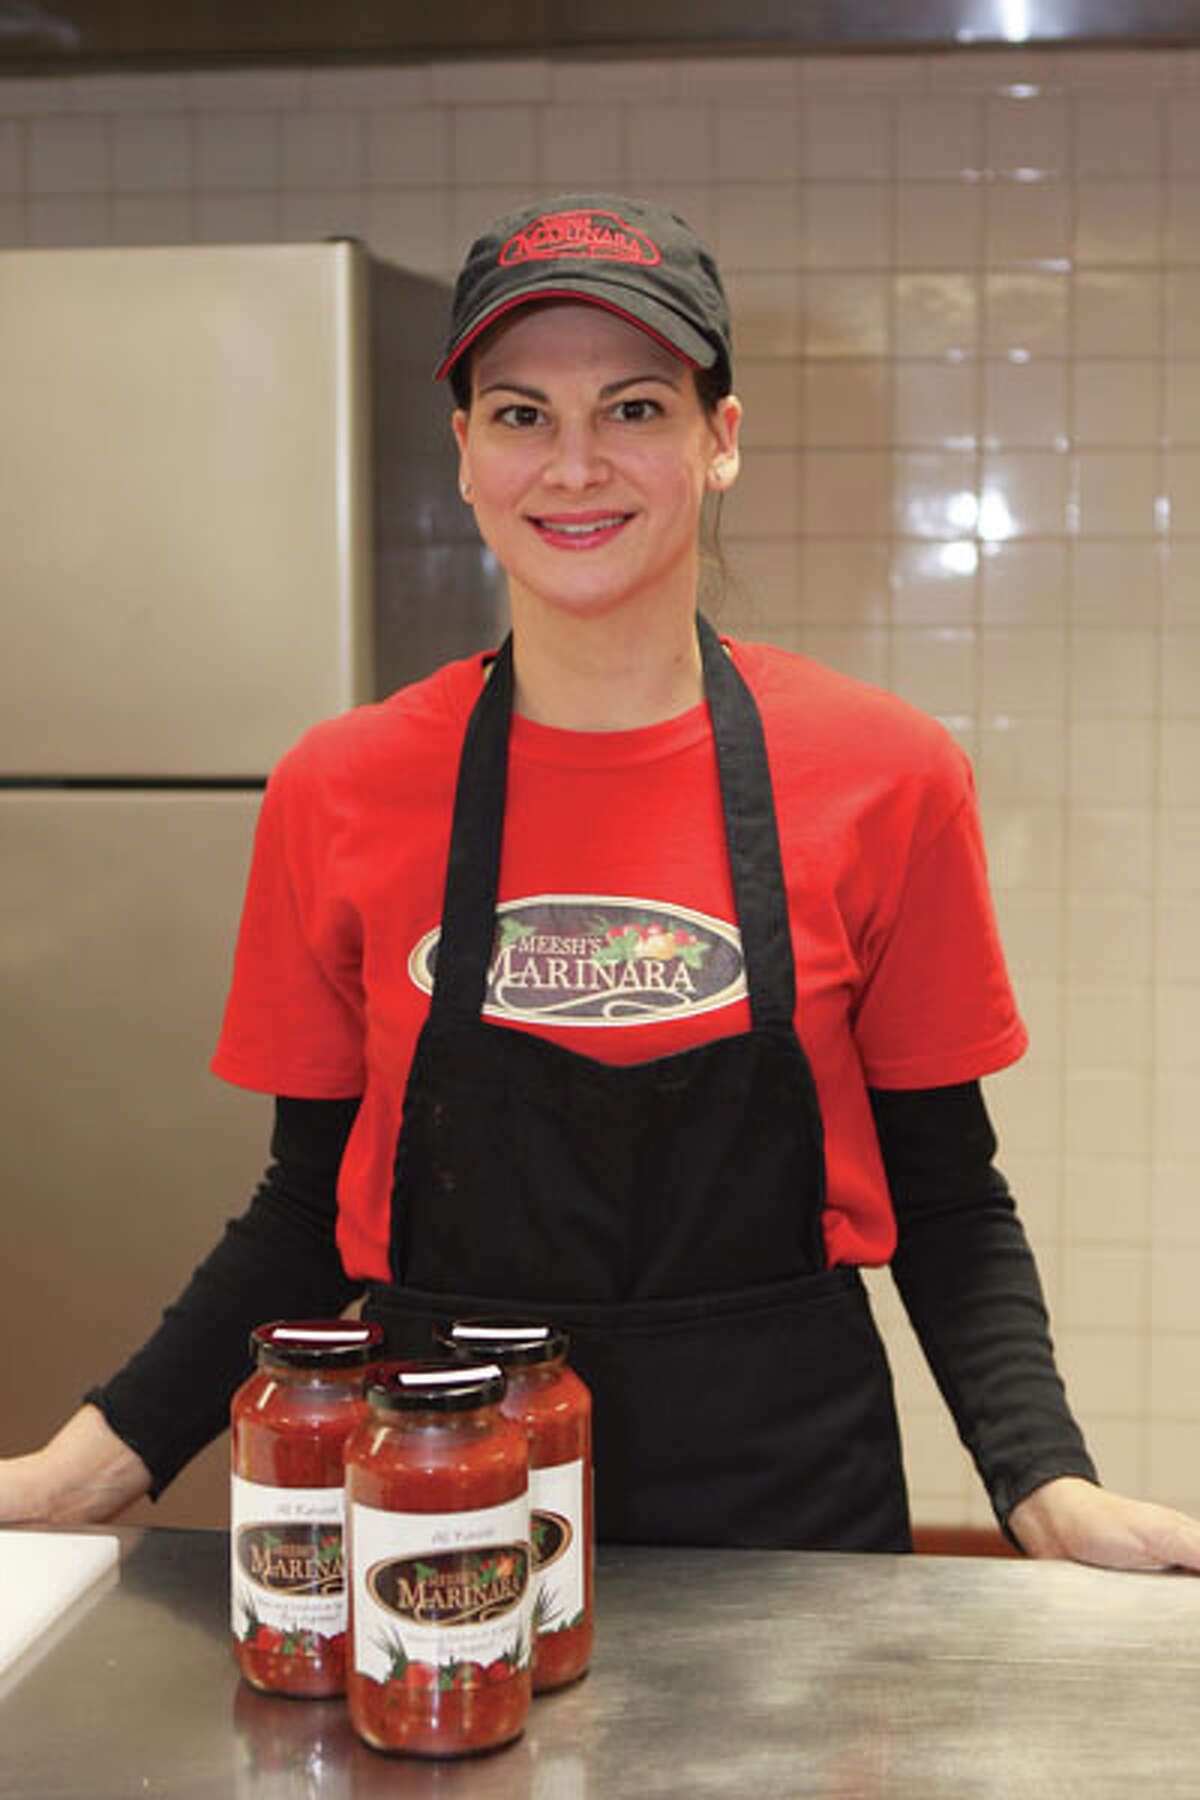 Armed with an Italian upbringing that included watching her father create magic in the kitchen, Michelle Moricone created her own line of all-natural marinara sauce that appears to be just the beginning for her fledgling business. Read the story here.